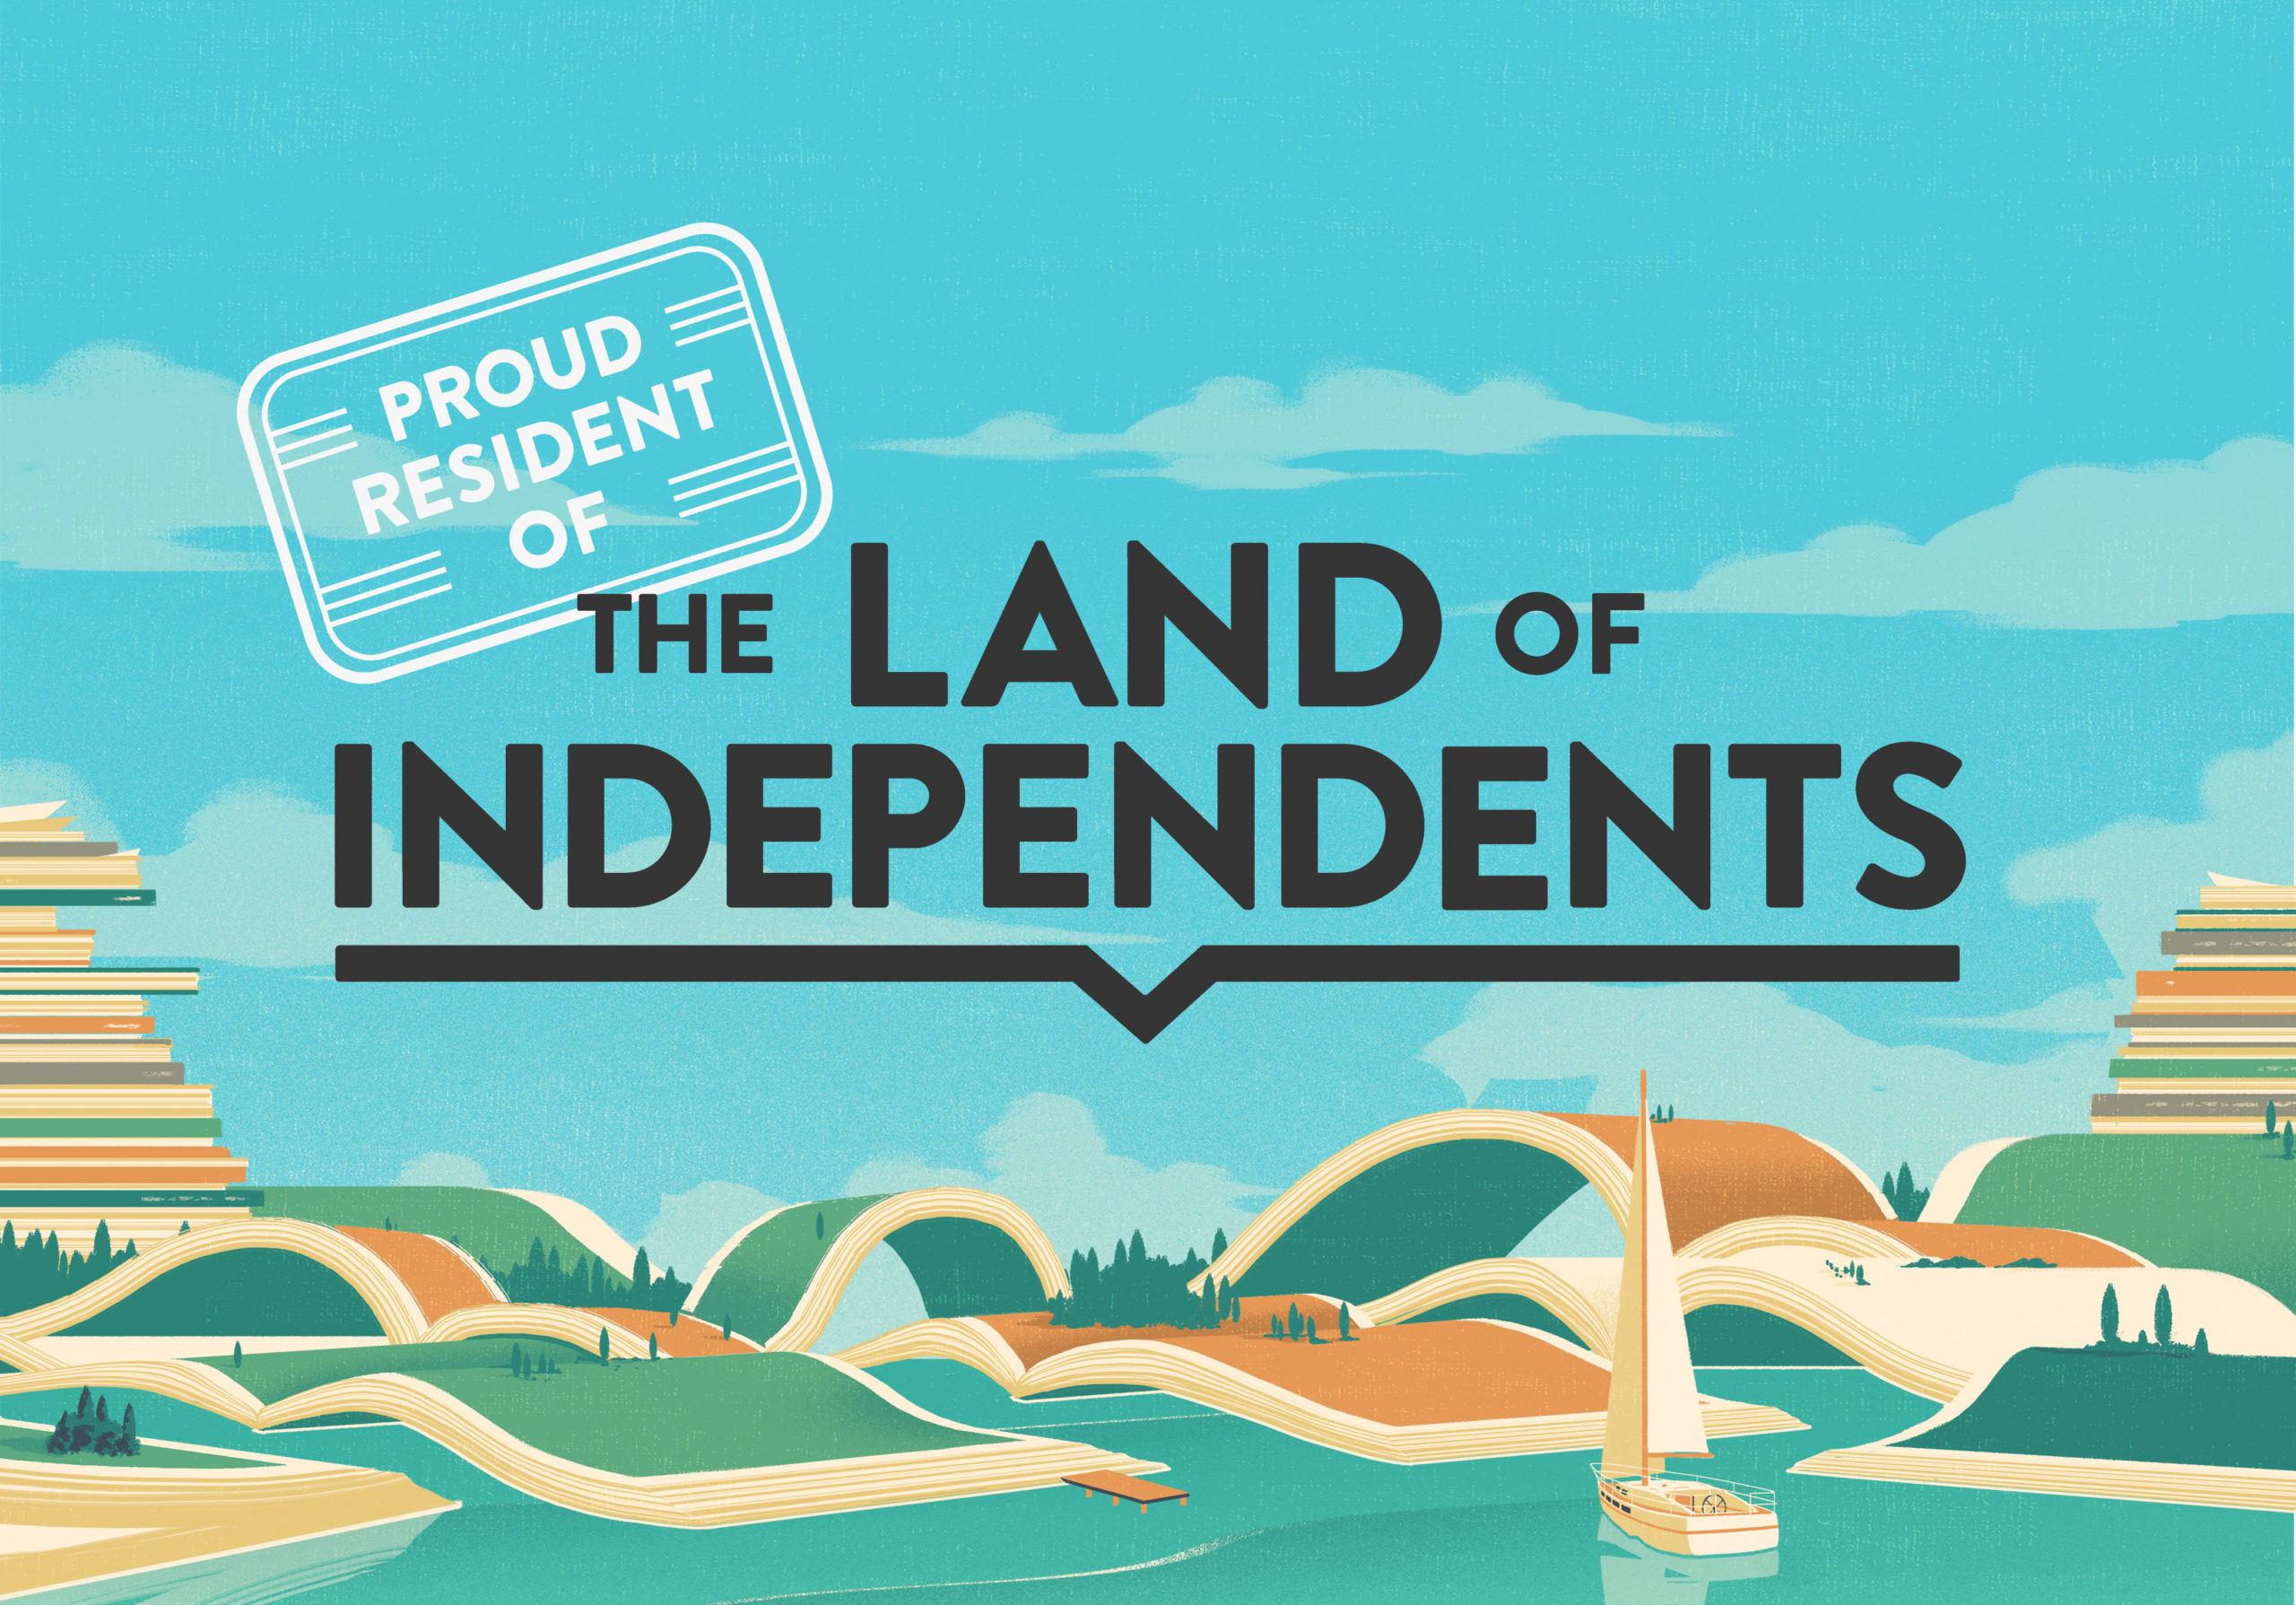 Land of Independents